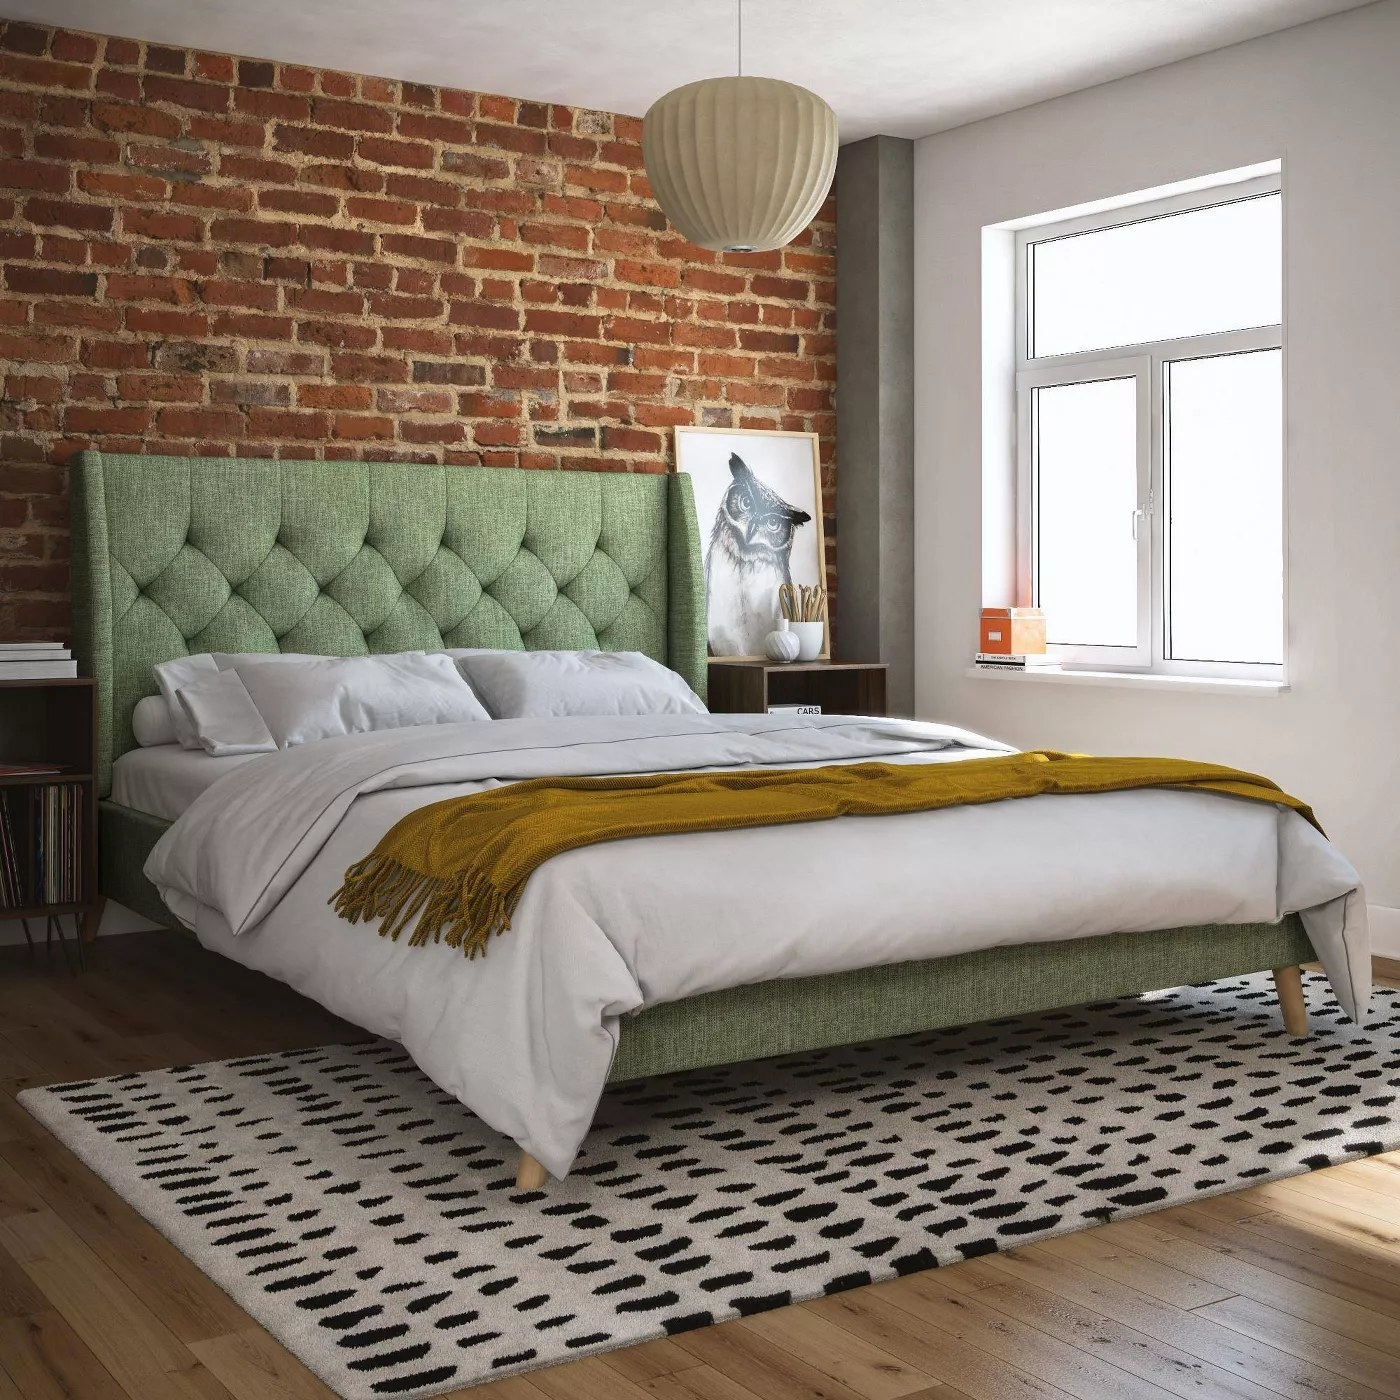 The green fabric bed